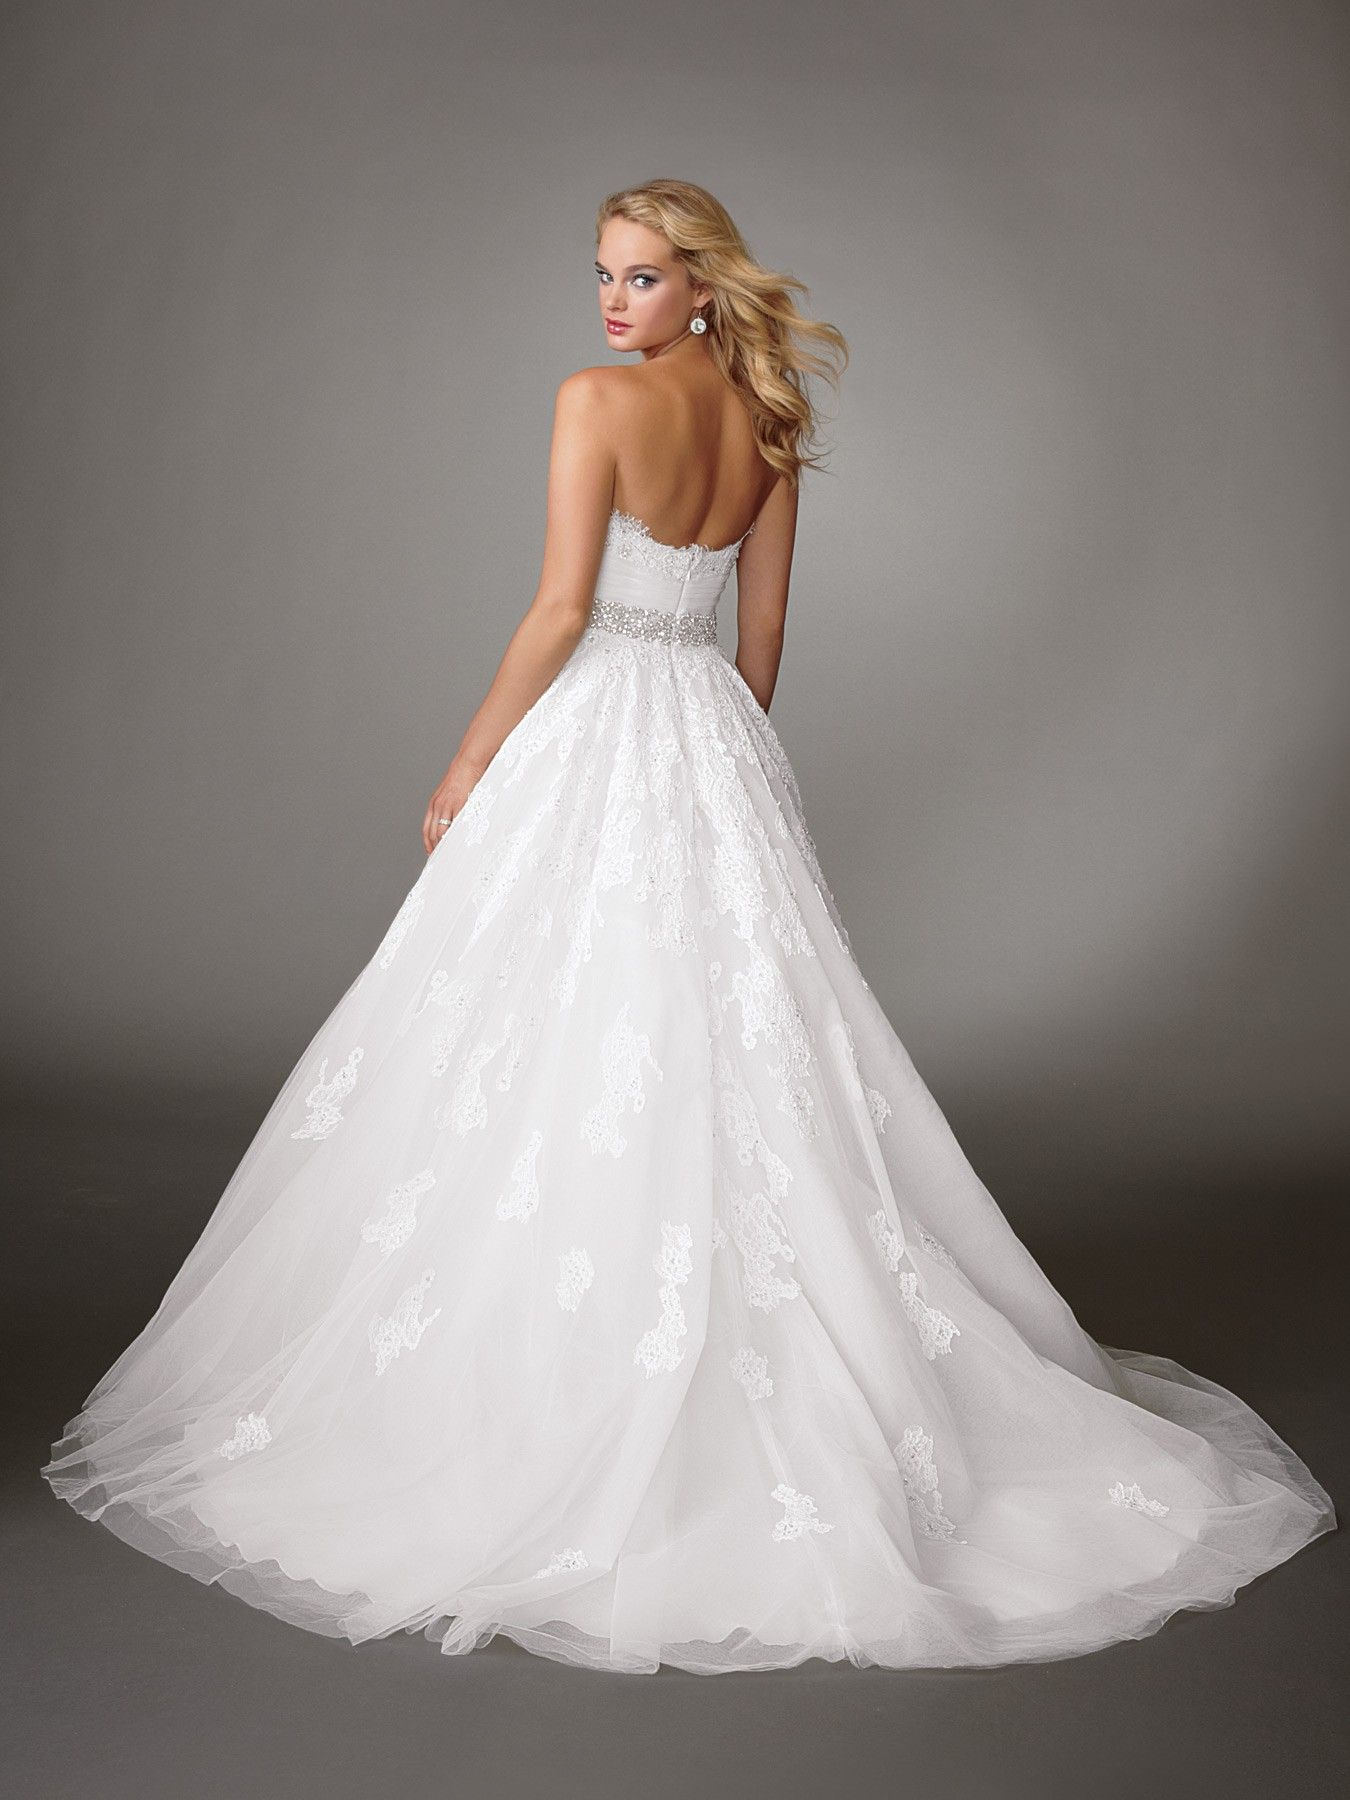 Most expensive wedding dress in the world  Jordan Fashions M back  The most expensive dress you will ever